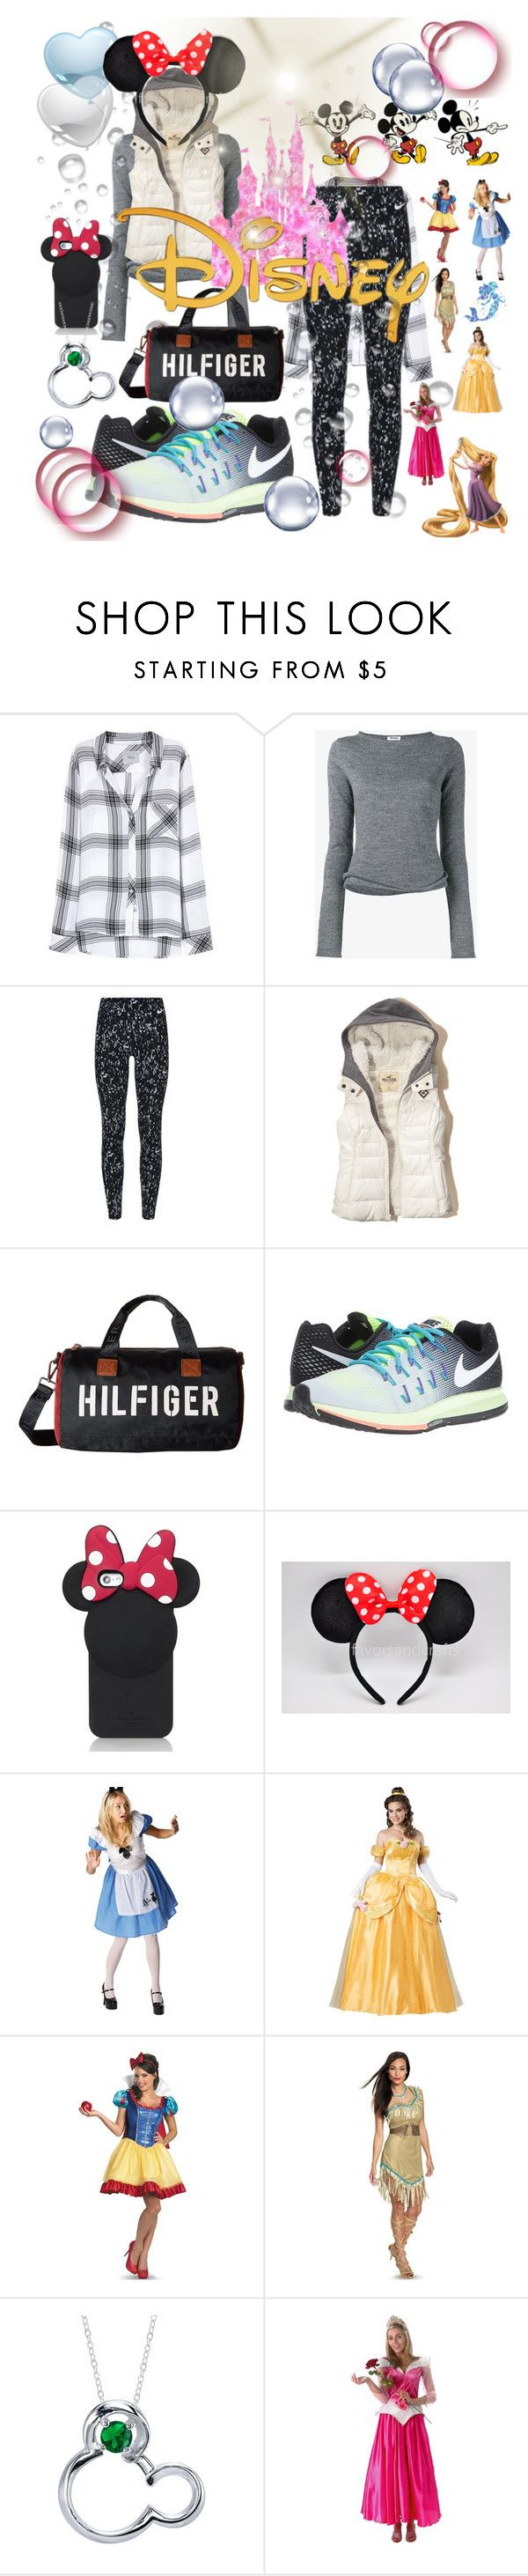 """Trip to Disney Anaheim"" by tropical-vegas-finest ❤ liked on Polyvore featuring Rails, Acne Studios, NIKE, Hollister Co., Tommy Hilfiger, Kate Spade and Disney"